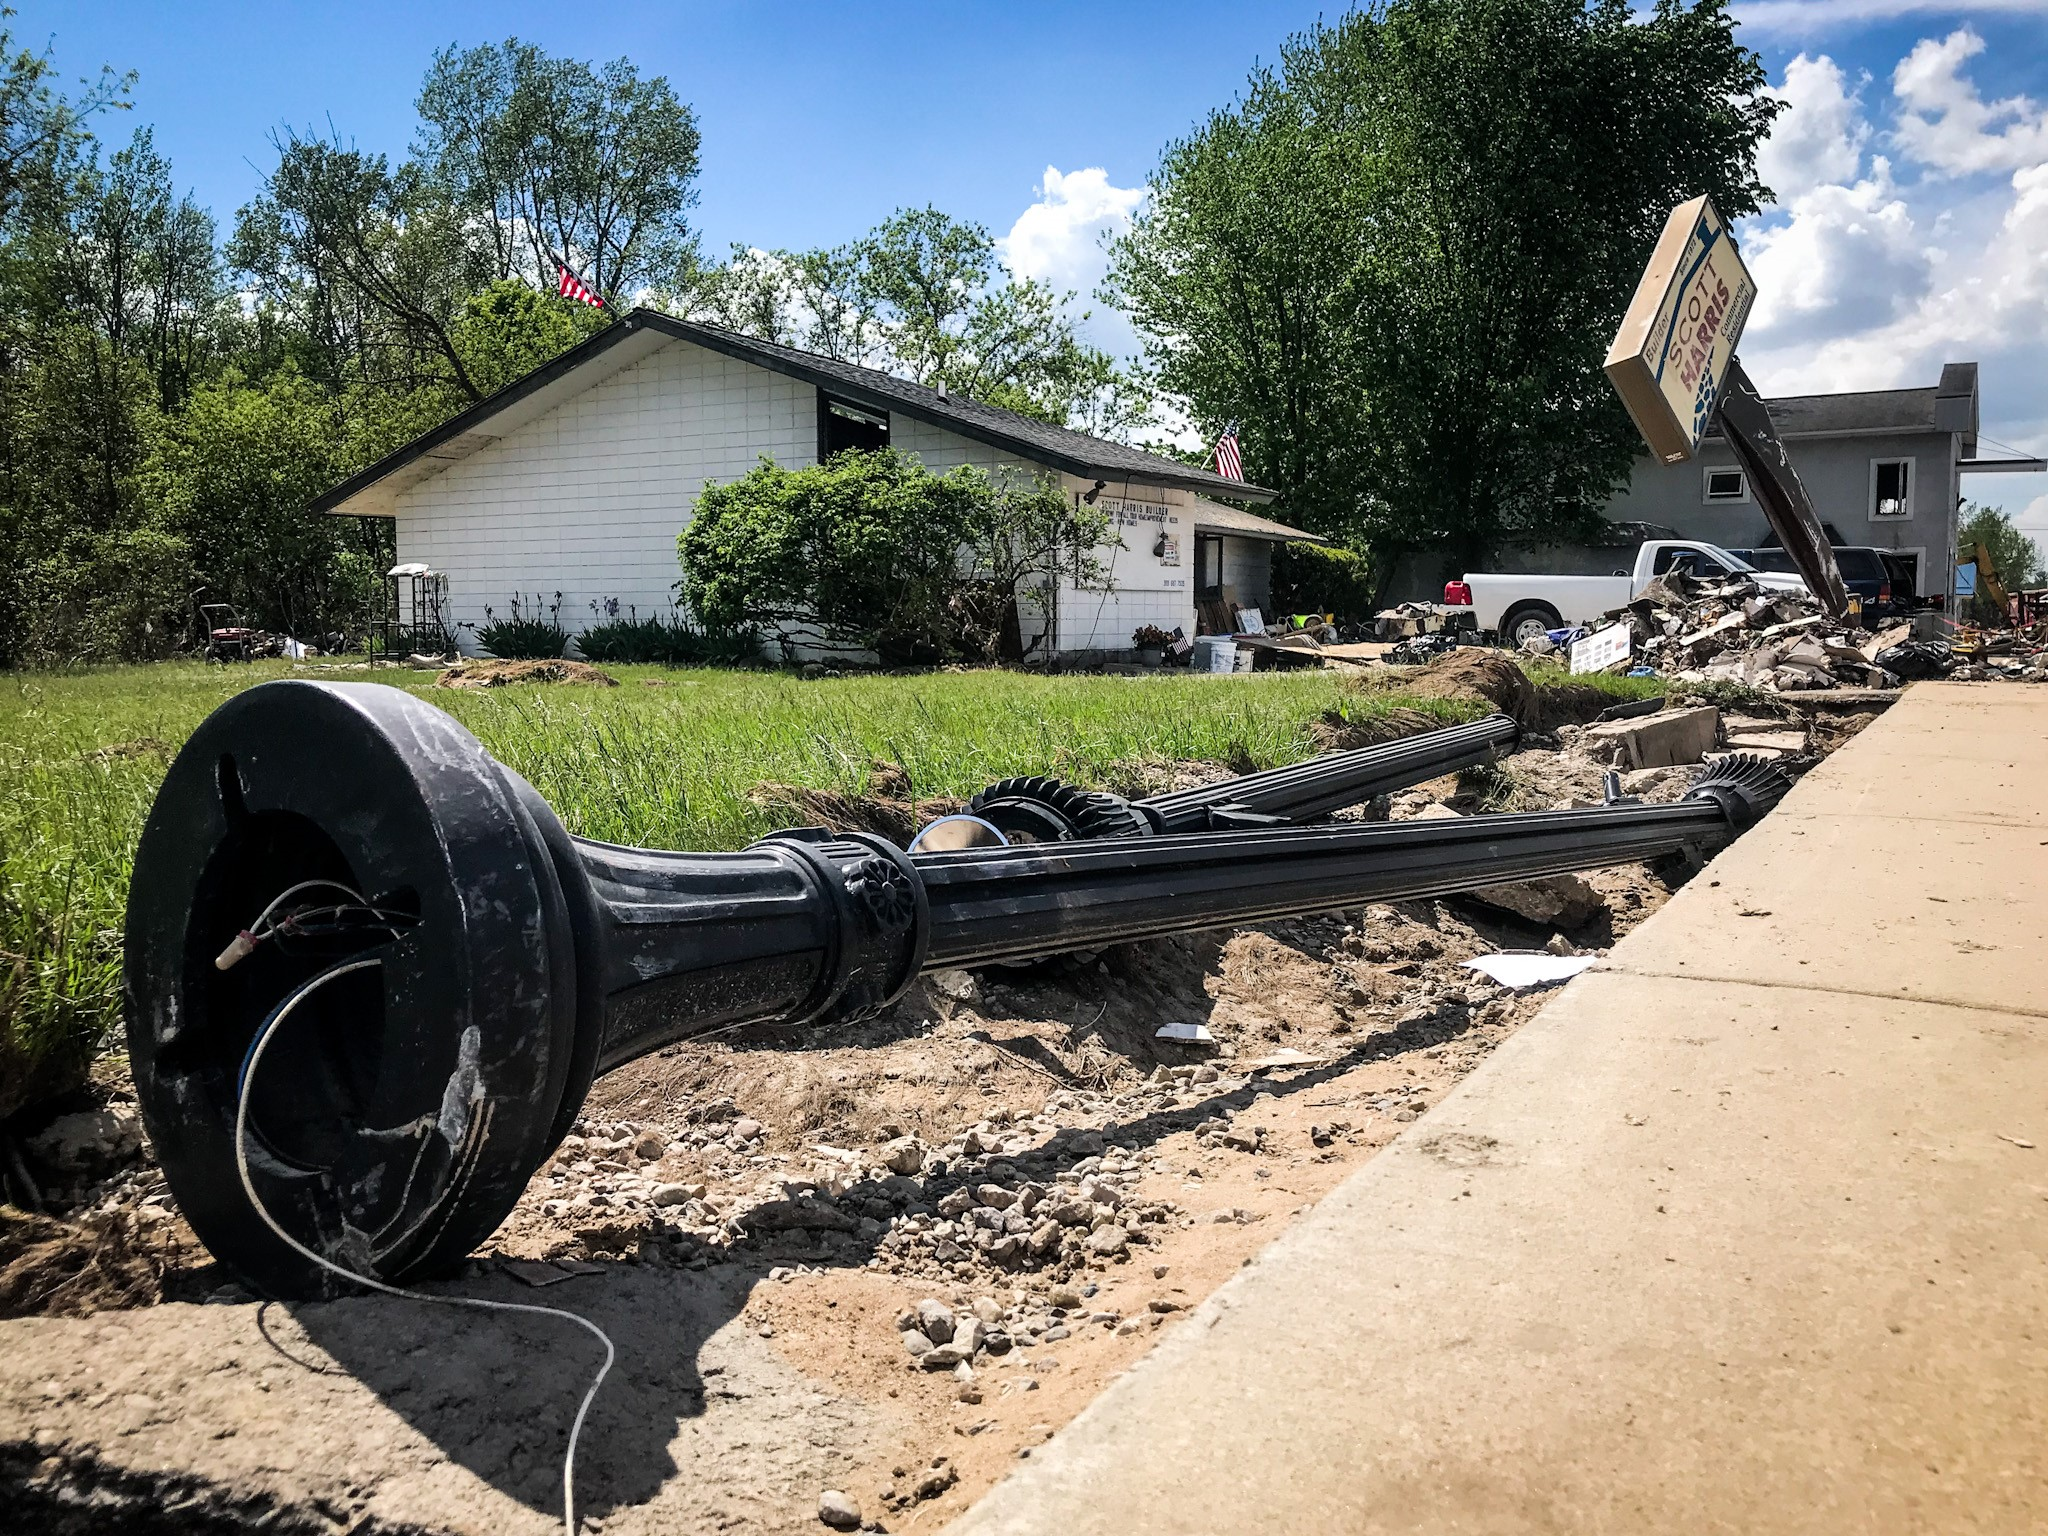 A surge of rushing water from Wixom lake causes a light pole to fall in downtown Sanford. Picture was taken on May 27, 2020. (WWMT/Mikenzie Frost)